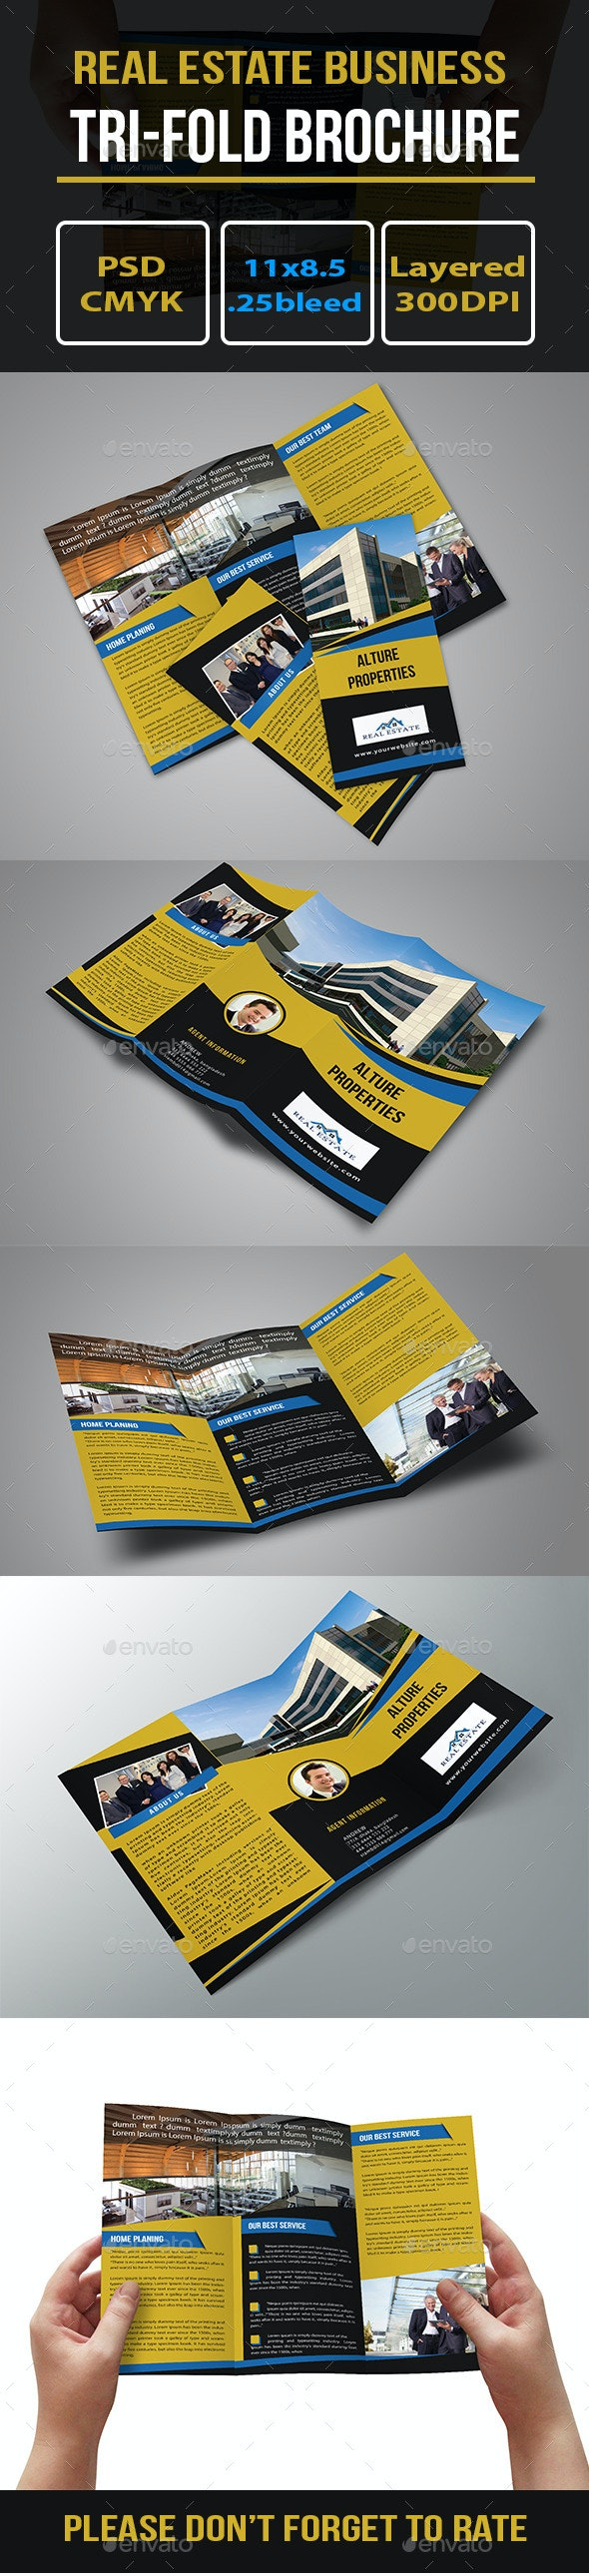 Real Estate Trifold Brochure Template - Brochures Print